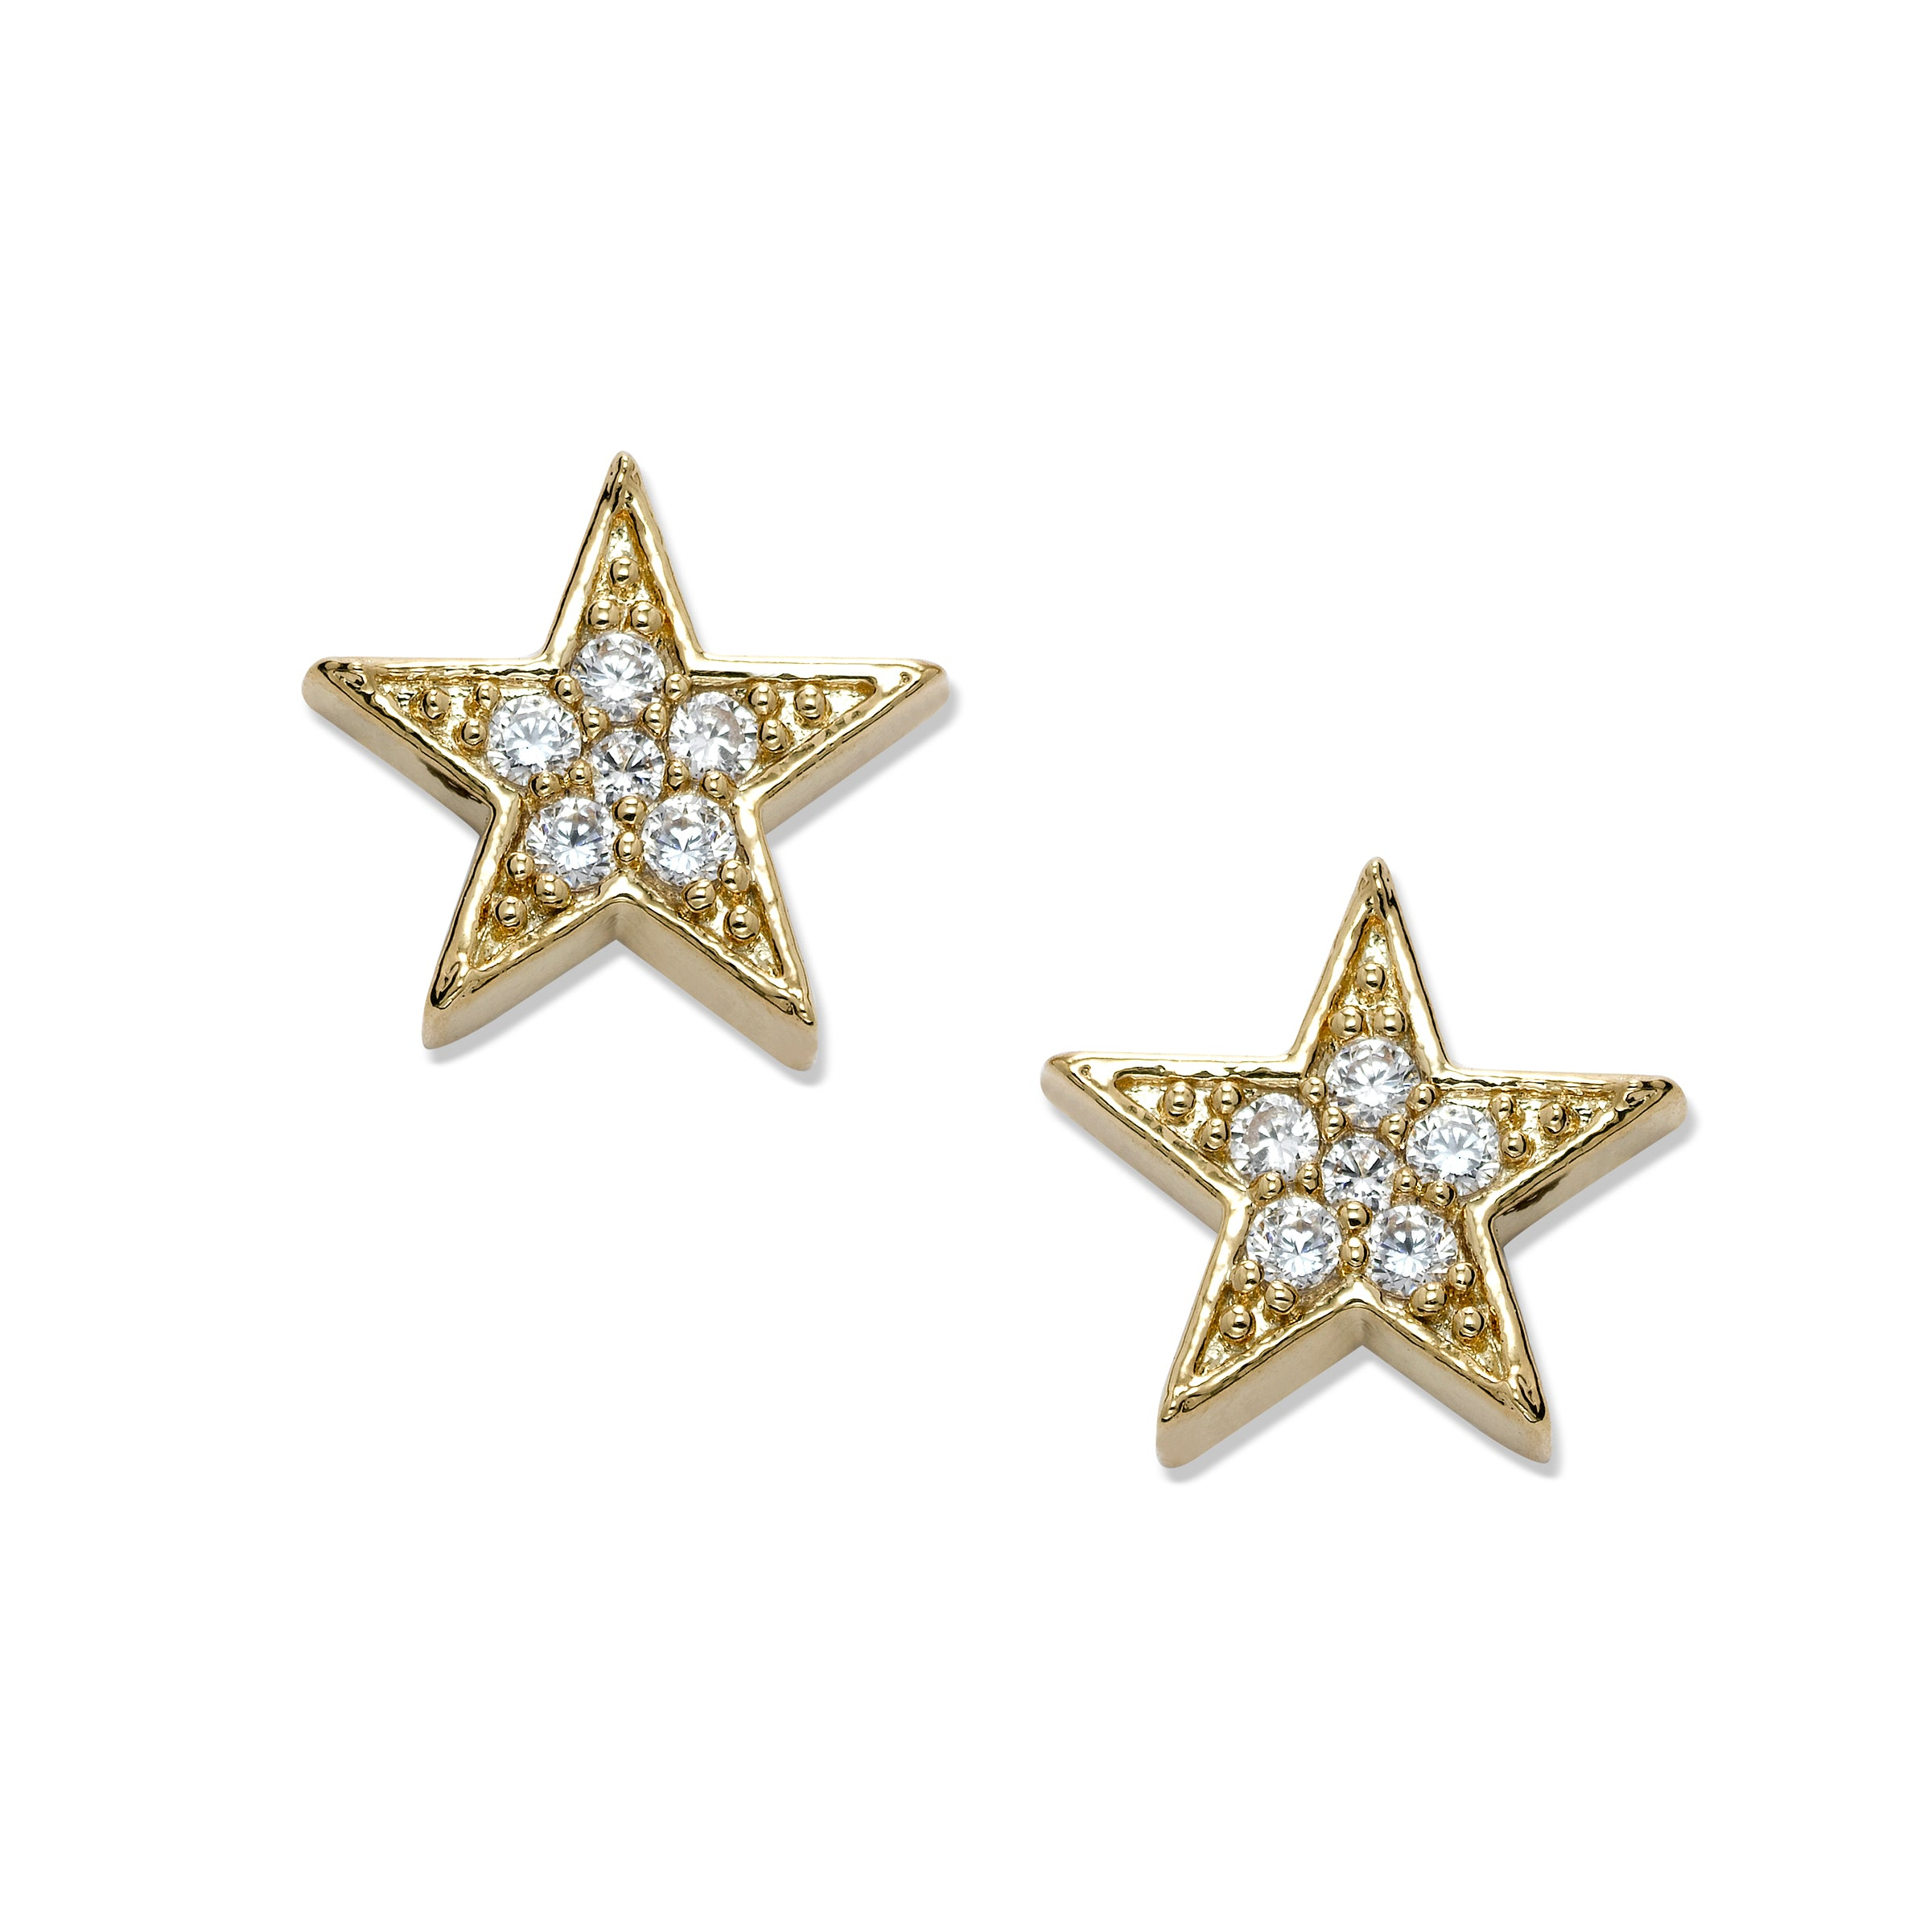 Clear Crystal Star Earrings, Gold Tone